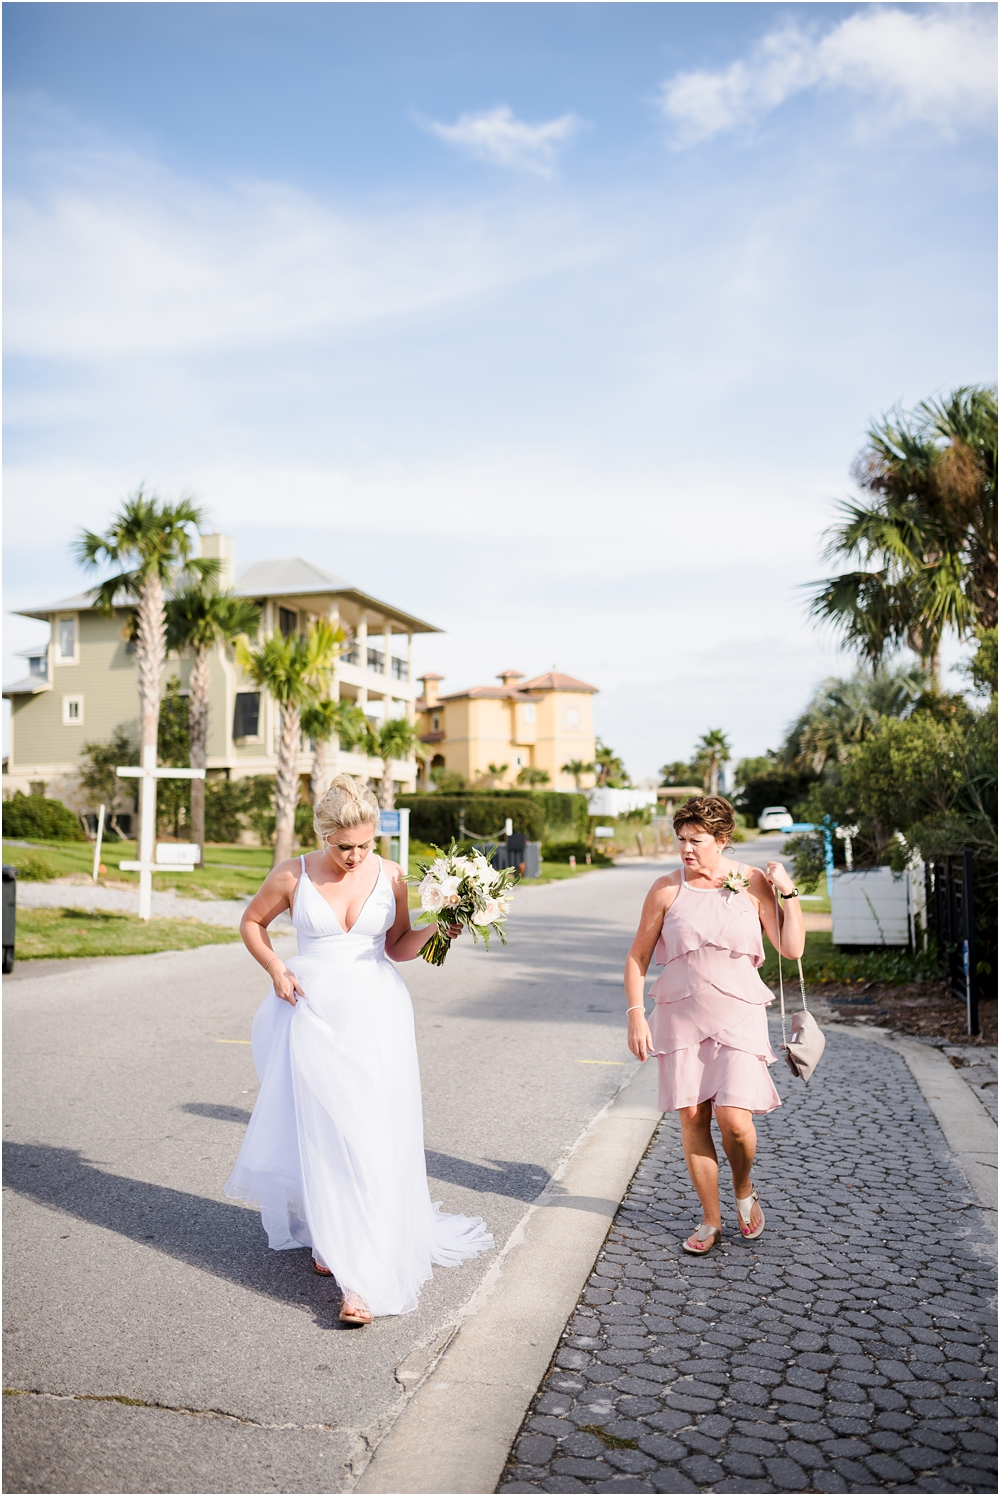 wernert-florida-beach-elopement-wedding-photographer-kiersten-grant-34.jpg